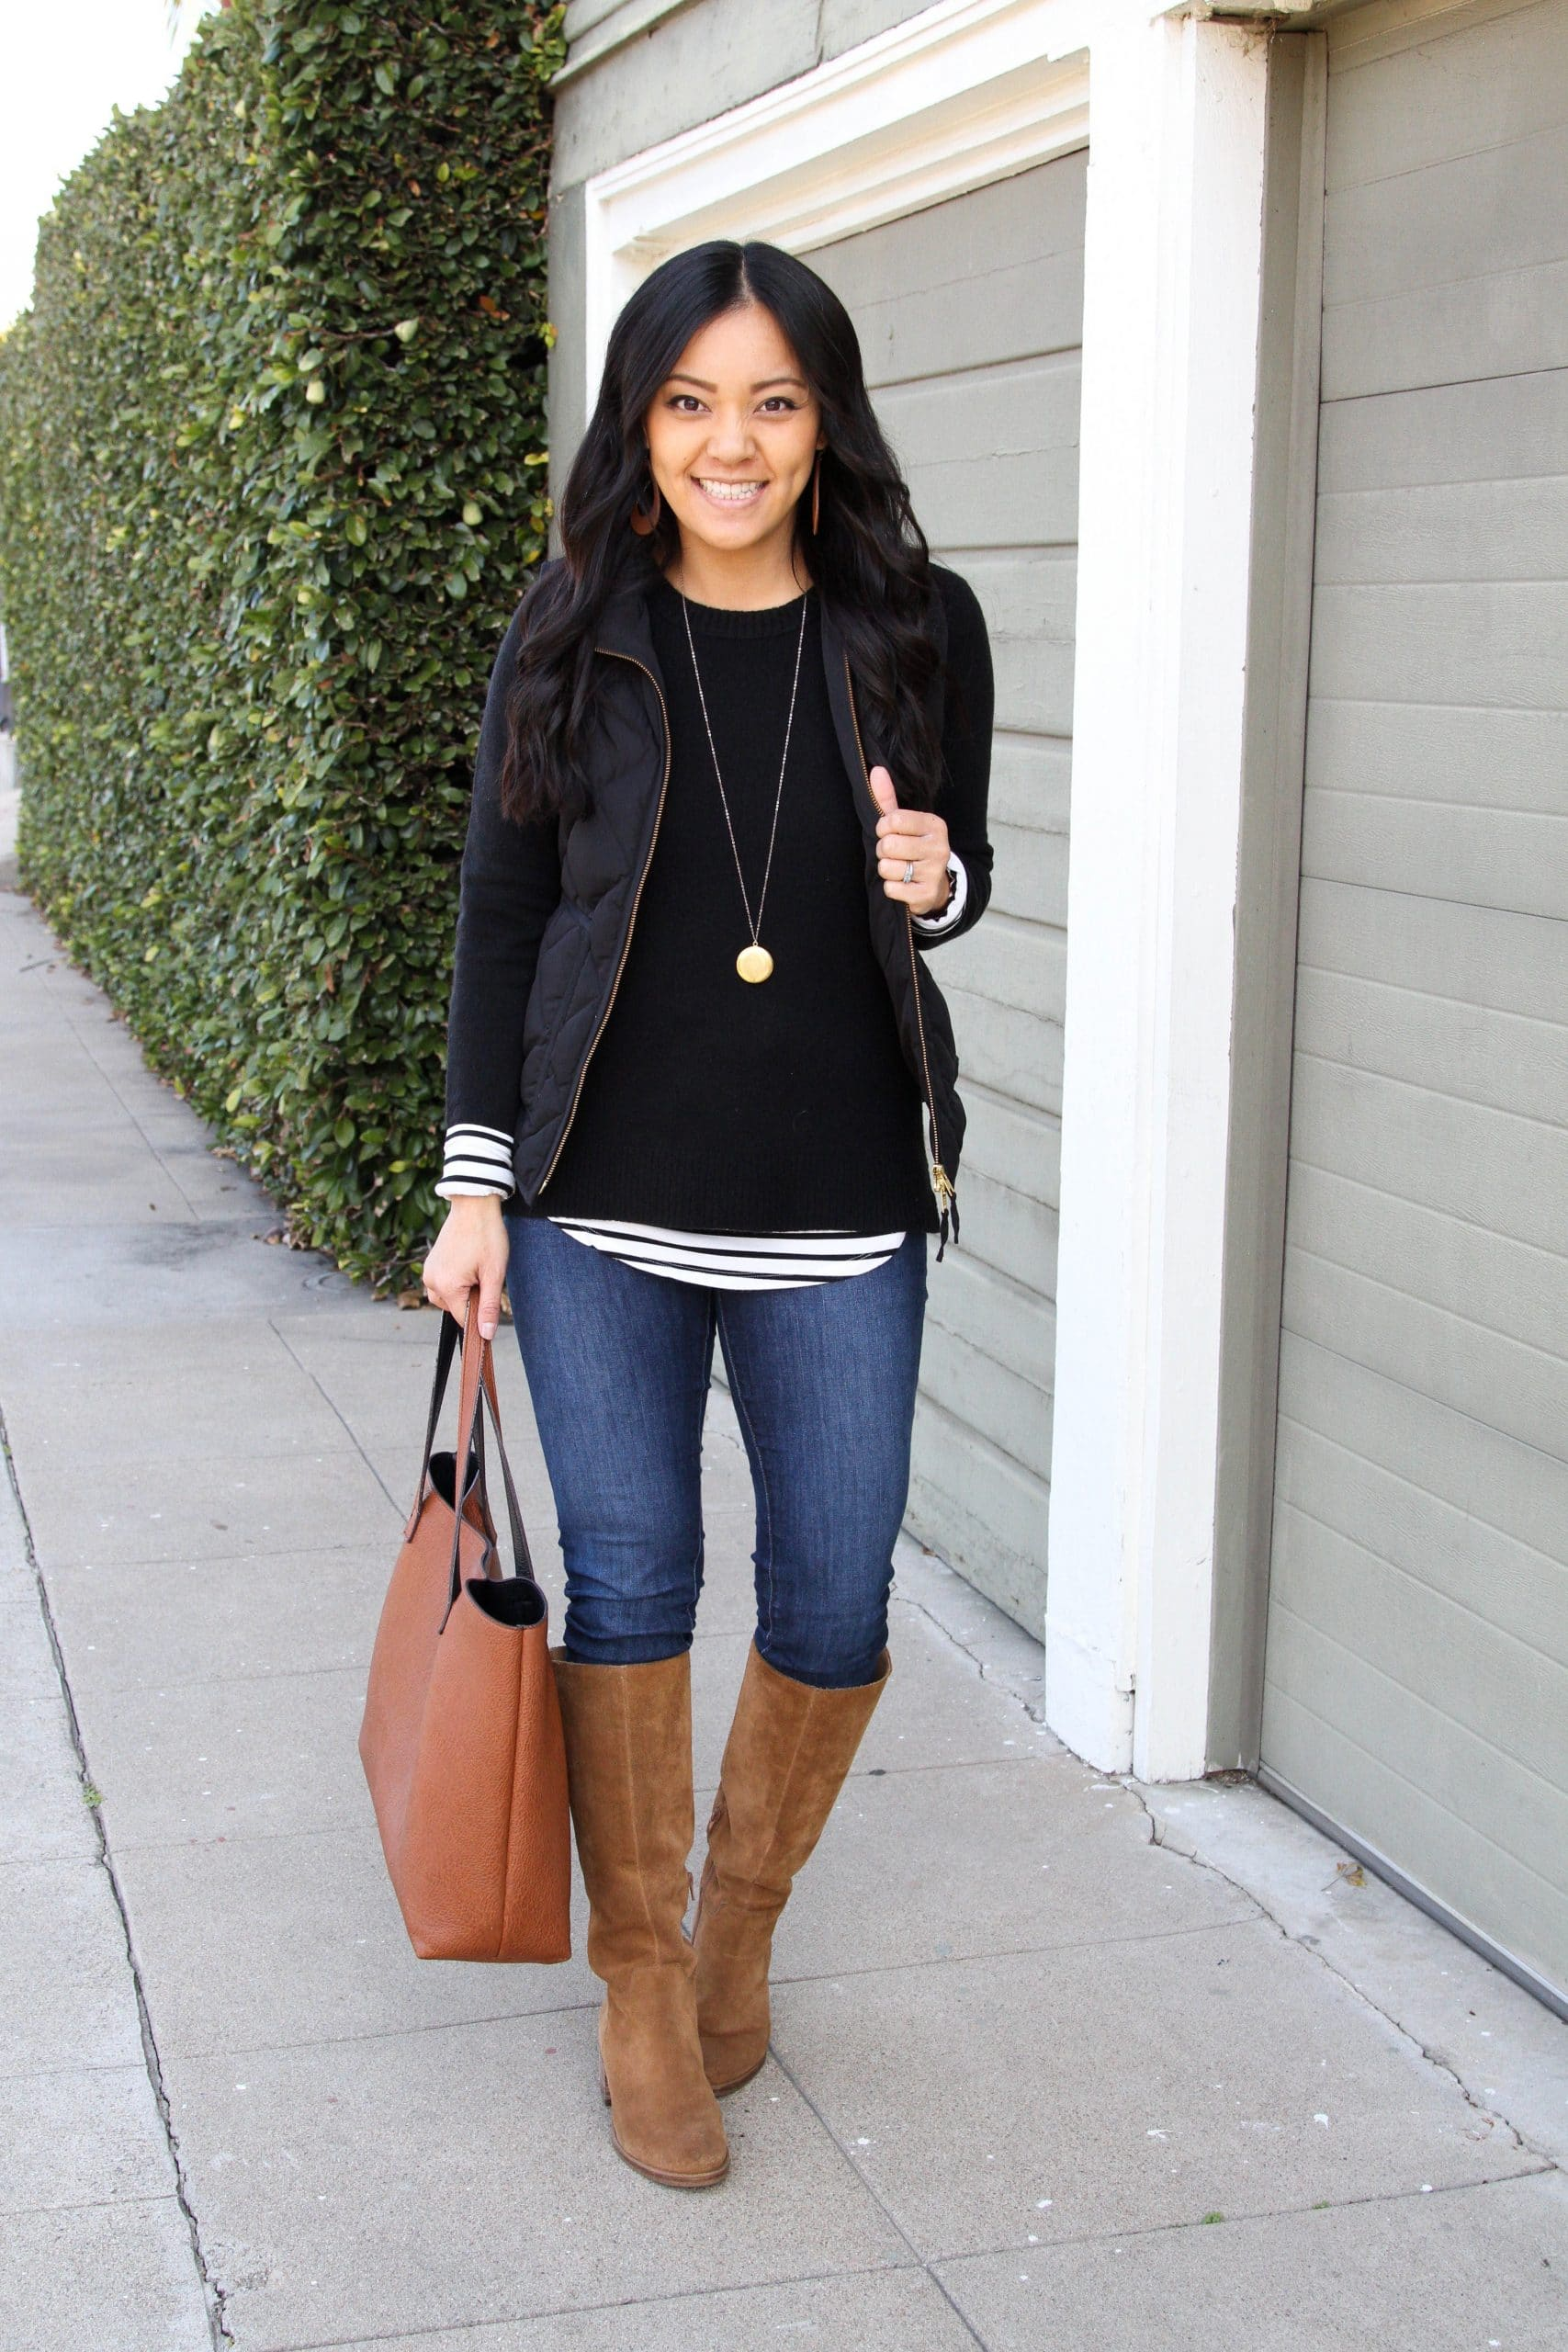 Winter Layering Outfit: black crewneck sweater + striped tee + black quilted vest + skinny jeans + cognac suede boots + gold pendant necklace + cognac tote